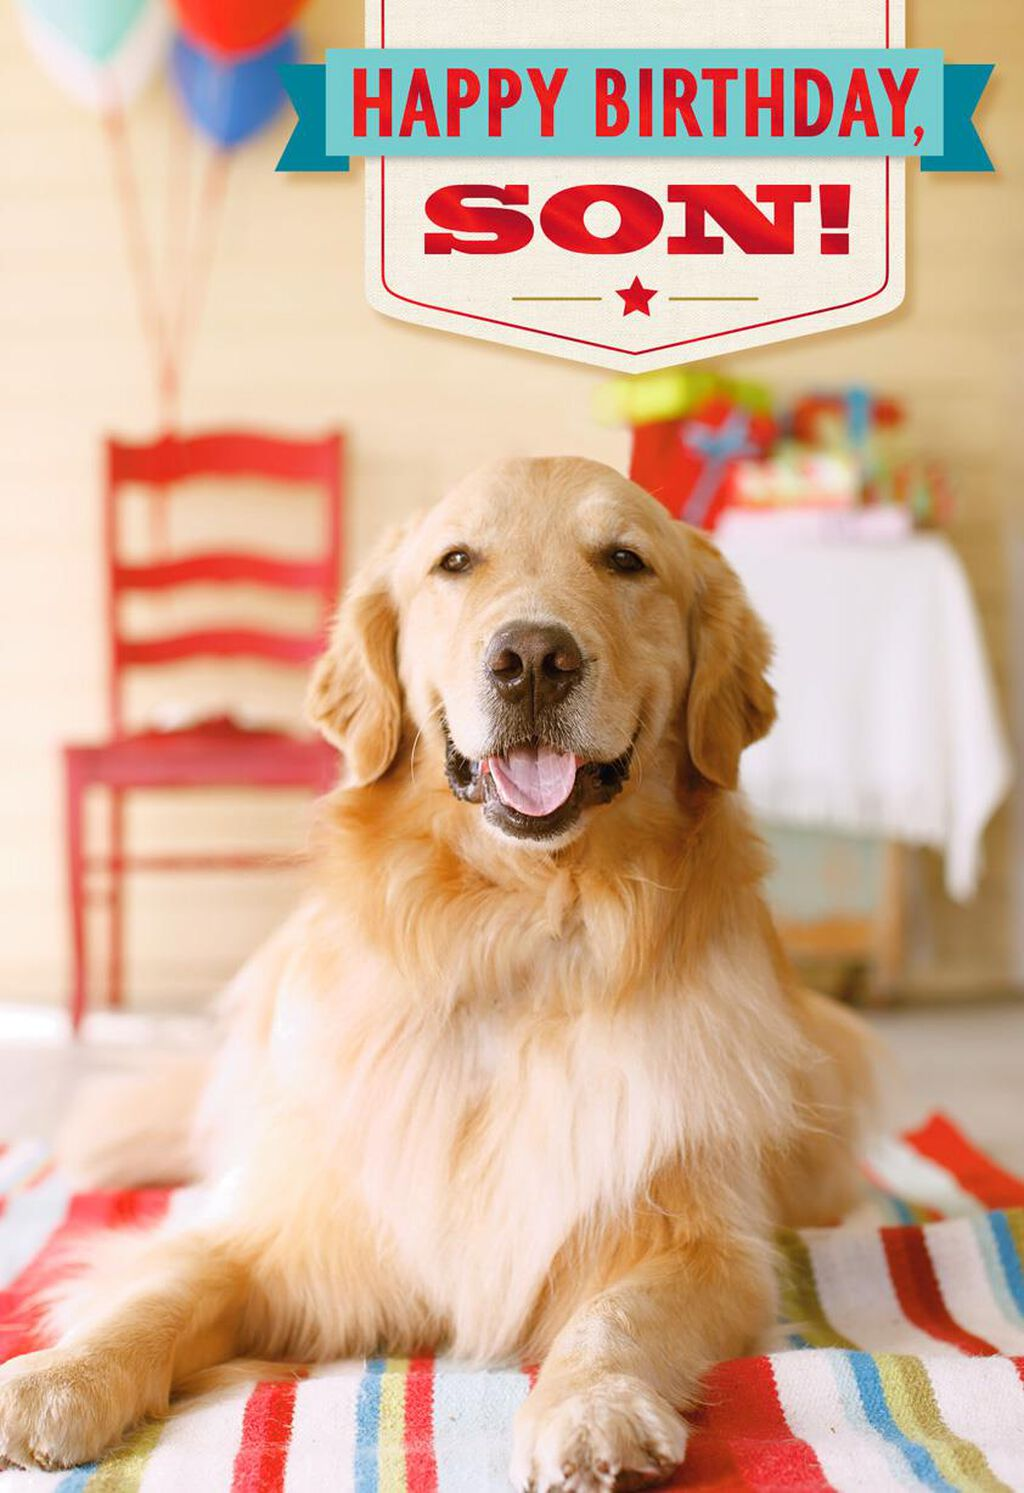 Dog At Party Birthday Card For Son